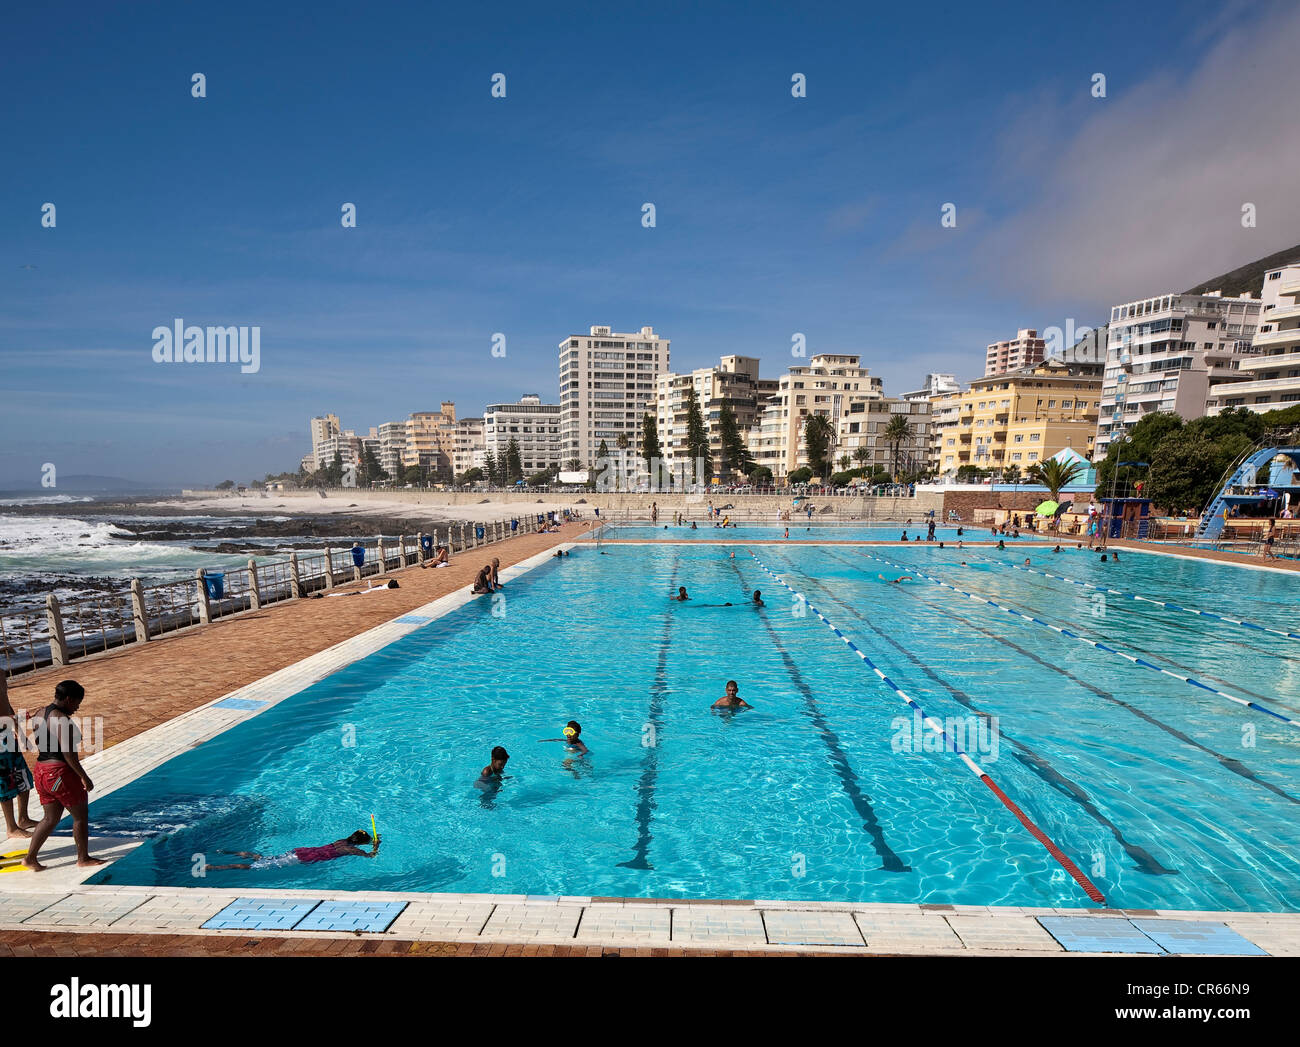 South Africa Western Cape Cape Town Sea Point Outdoor Swimming Stock Photo Royalty Free